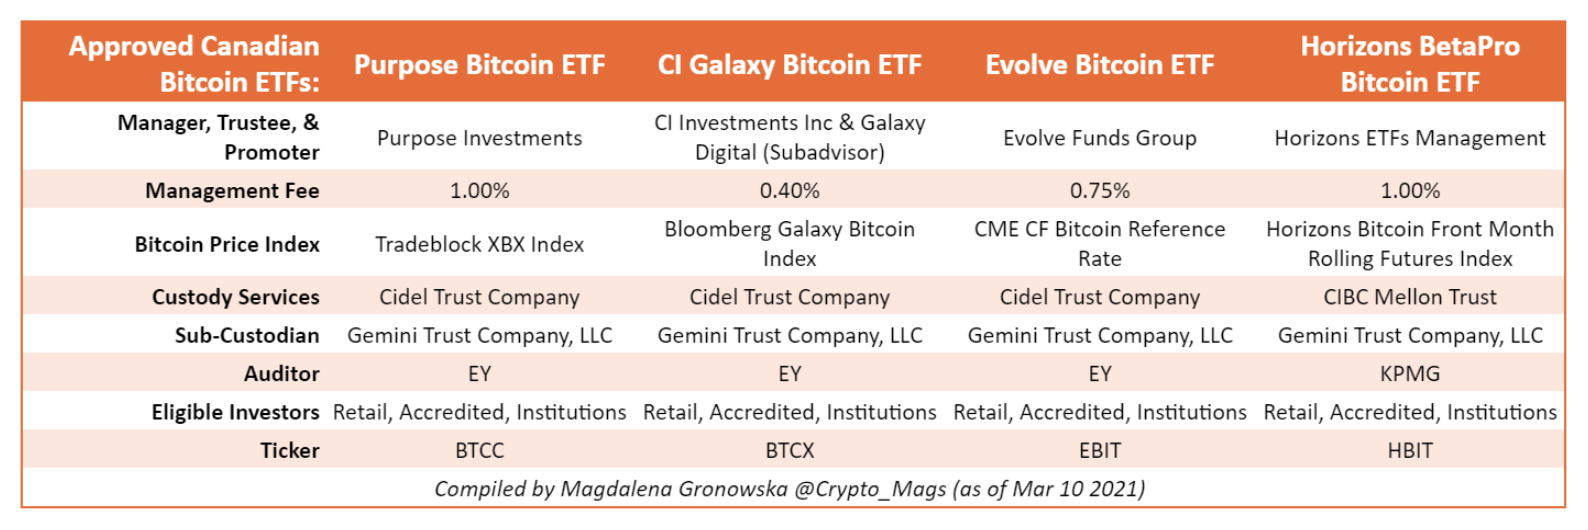 chart documenting custodial arrangements for cryptocurrency